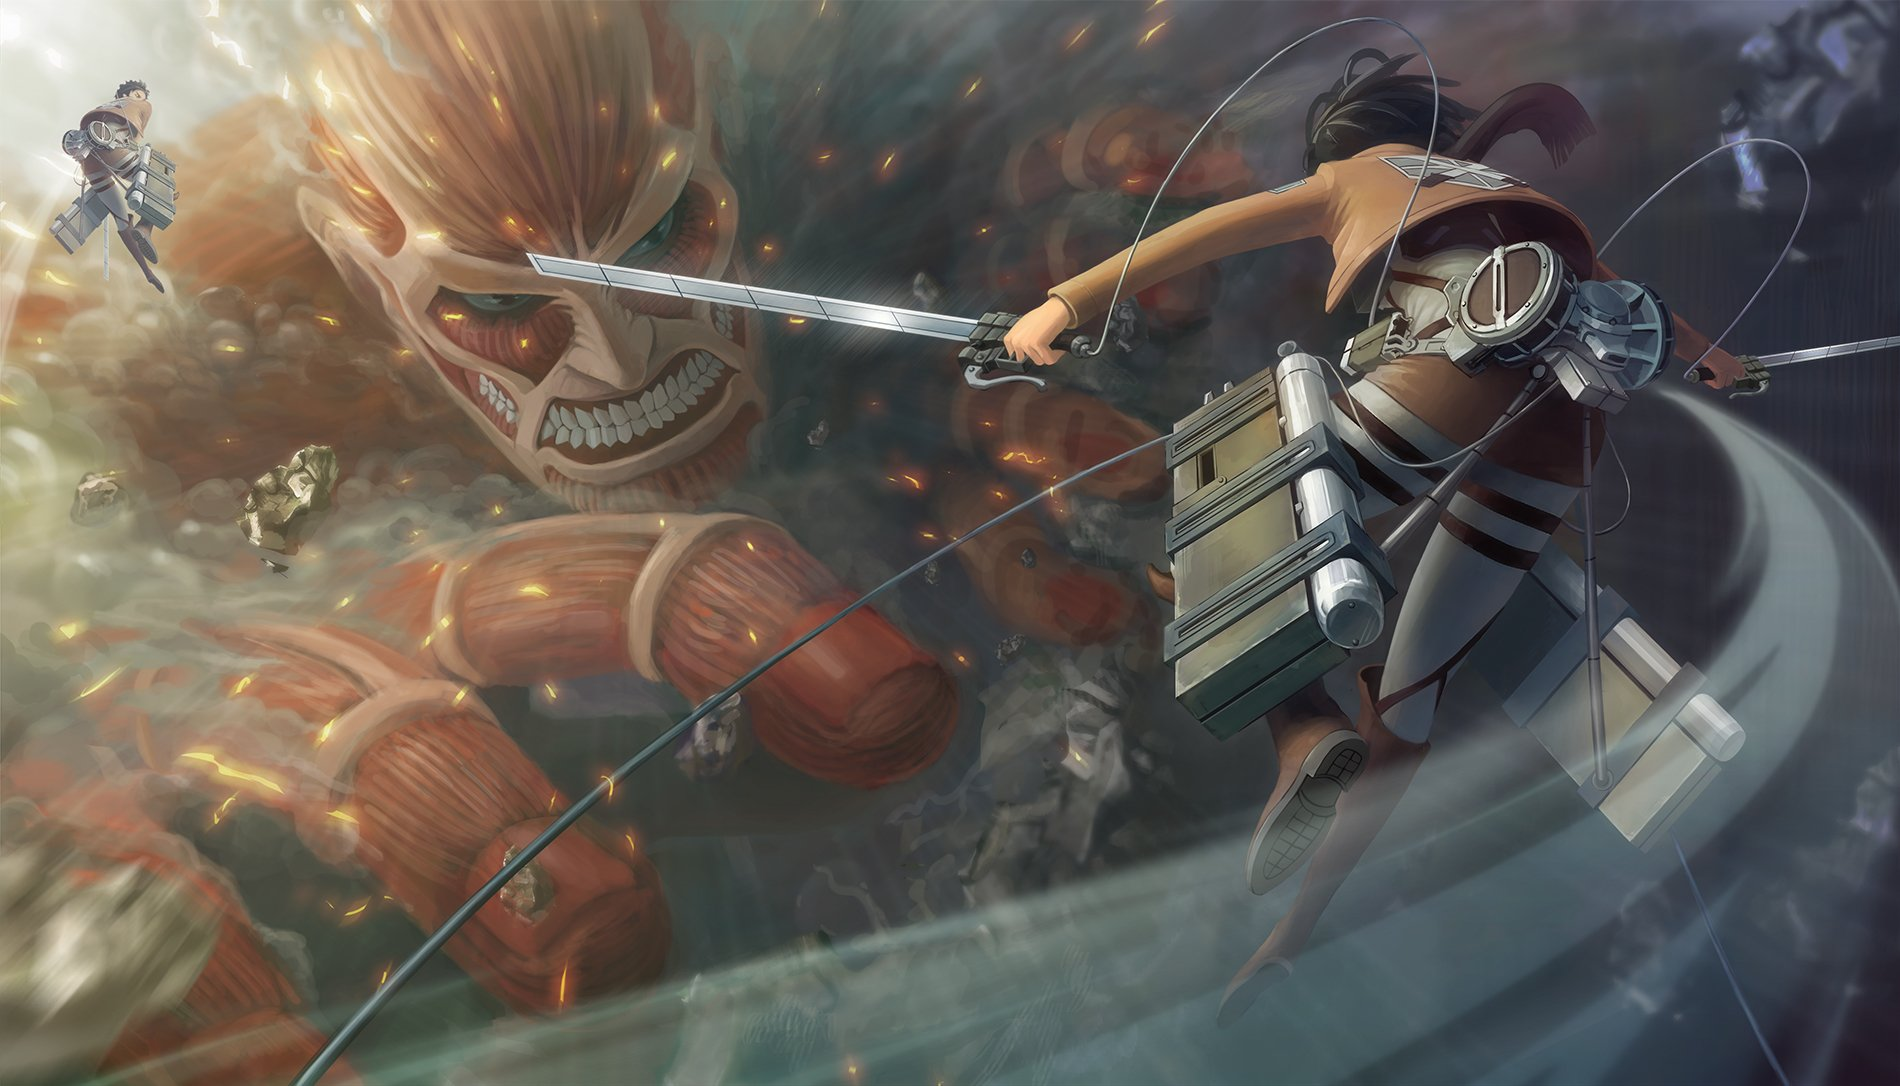 Download Colossal Titan Wallpaper Hd Backgrounds Download